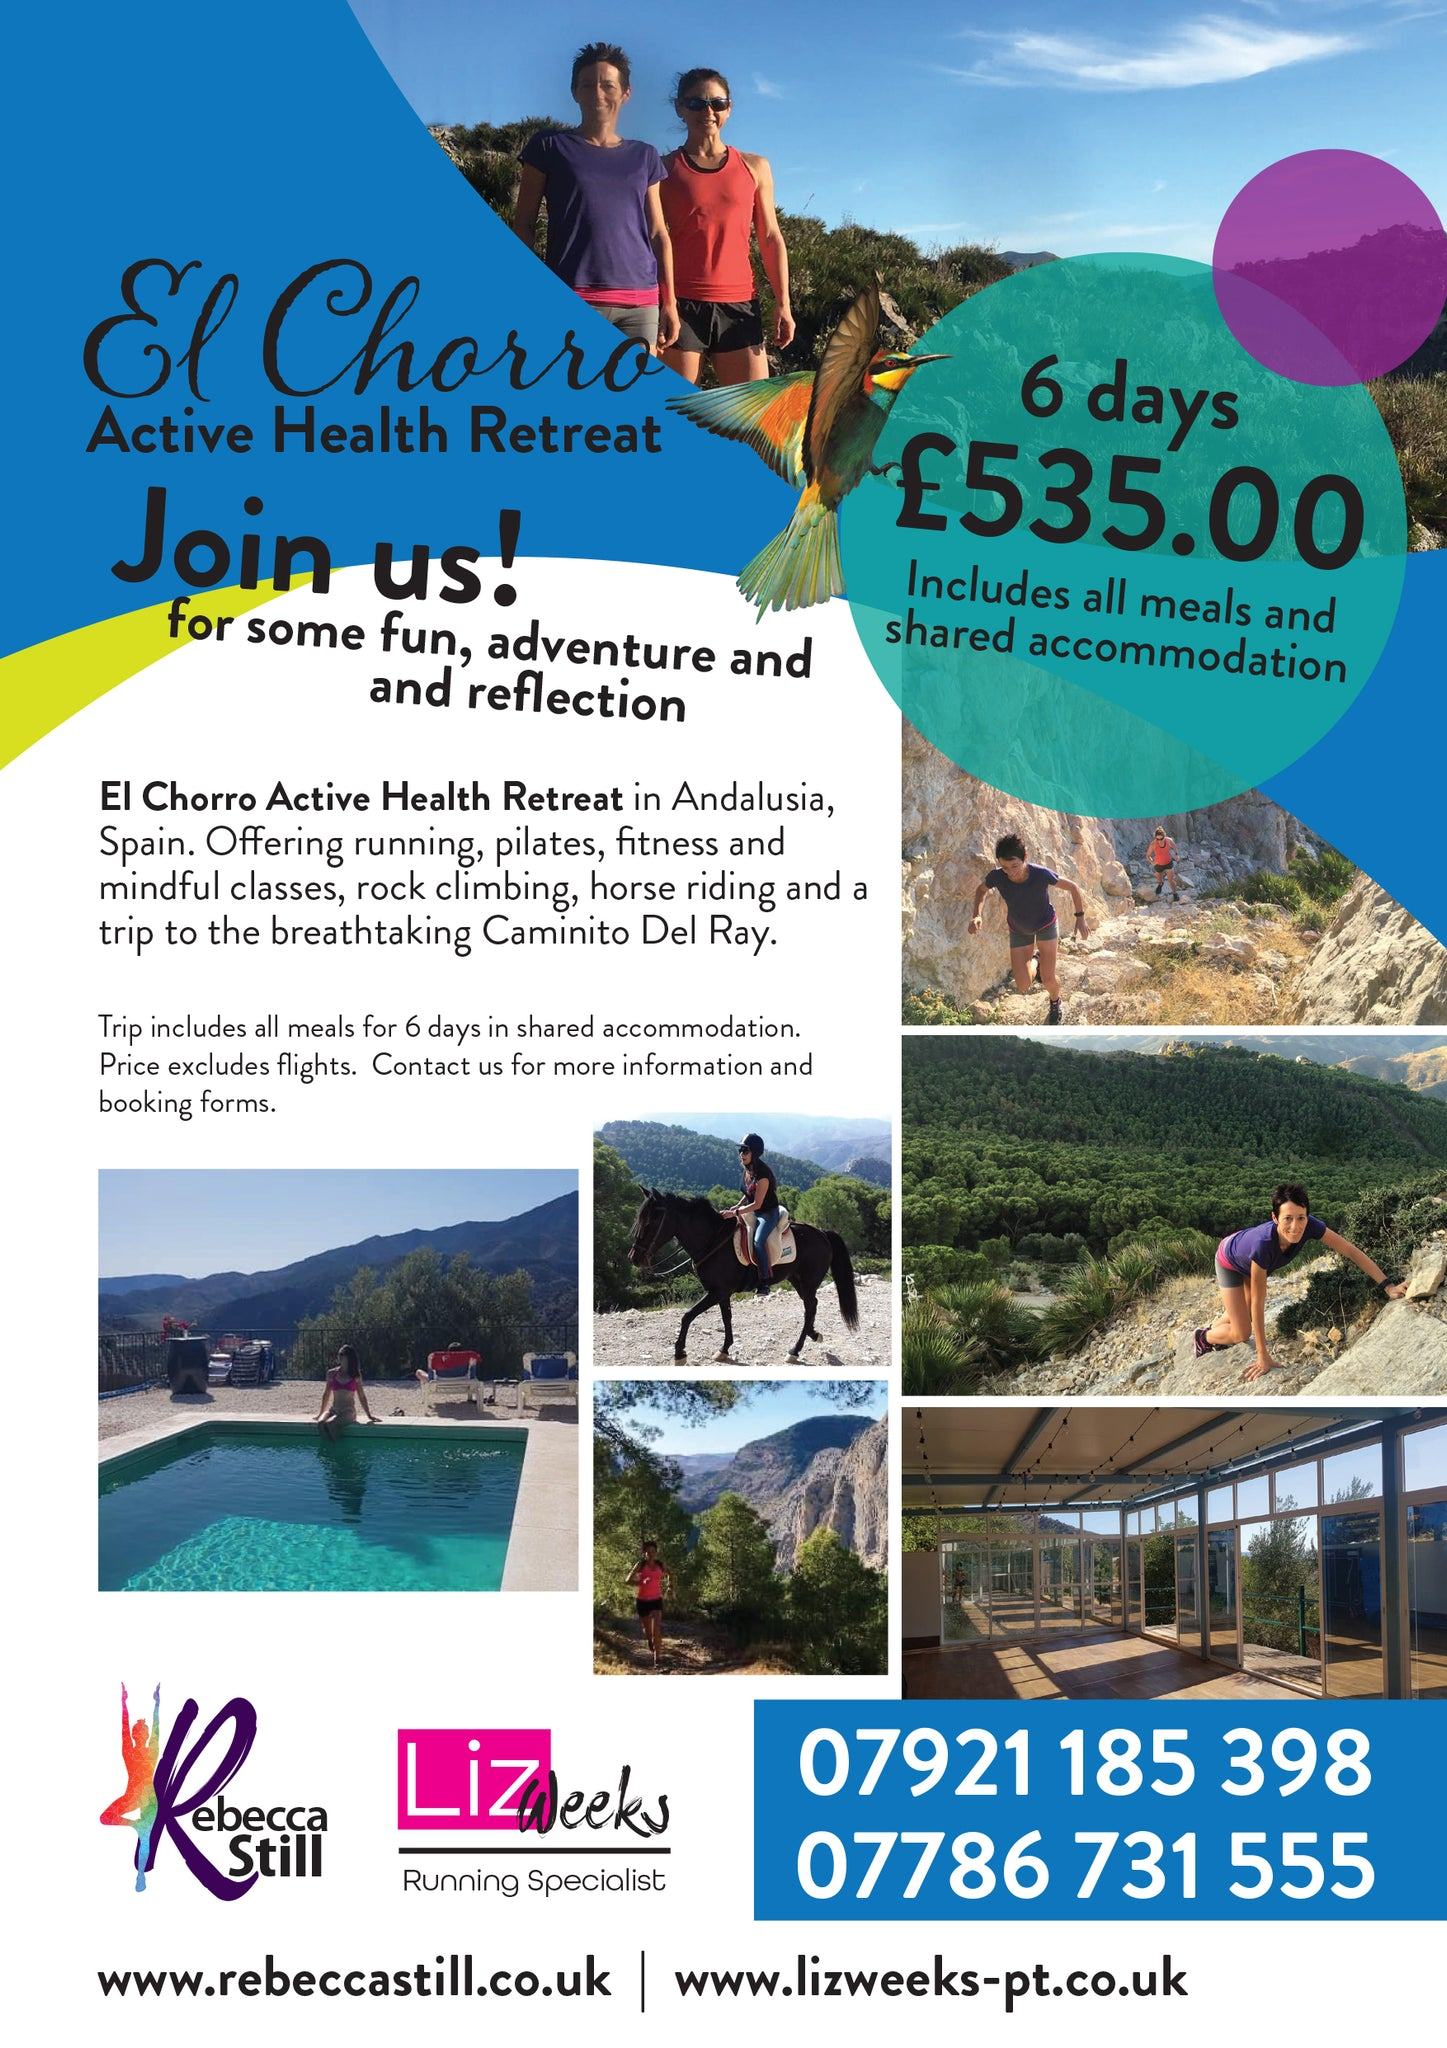 El Churro Active Health Retreats